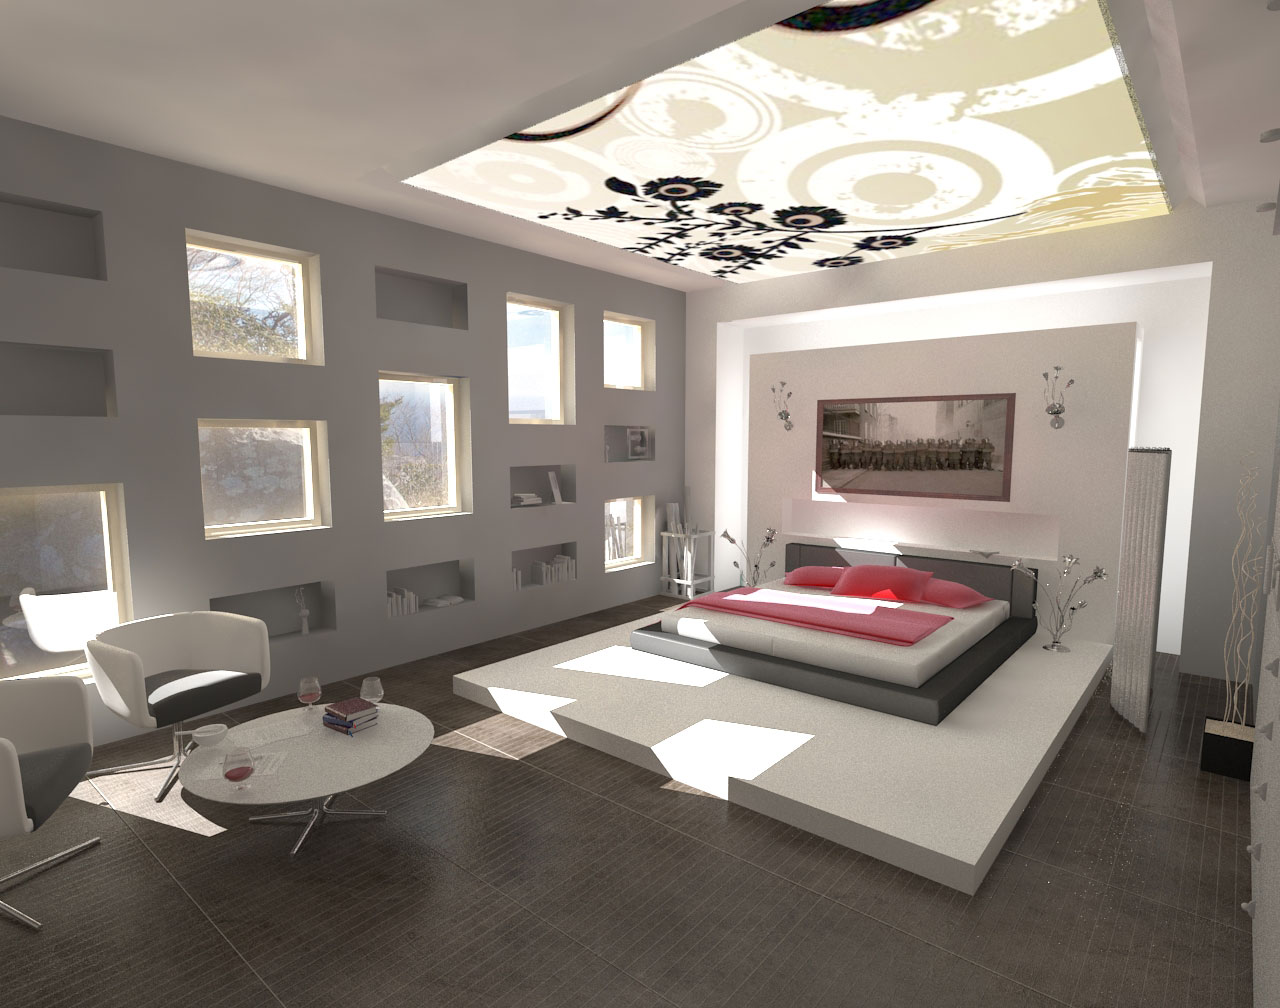 Remarkable Modern Bedroom Interior Design Ideas 1280 x 1008 · 183 kB · jpeg